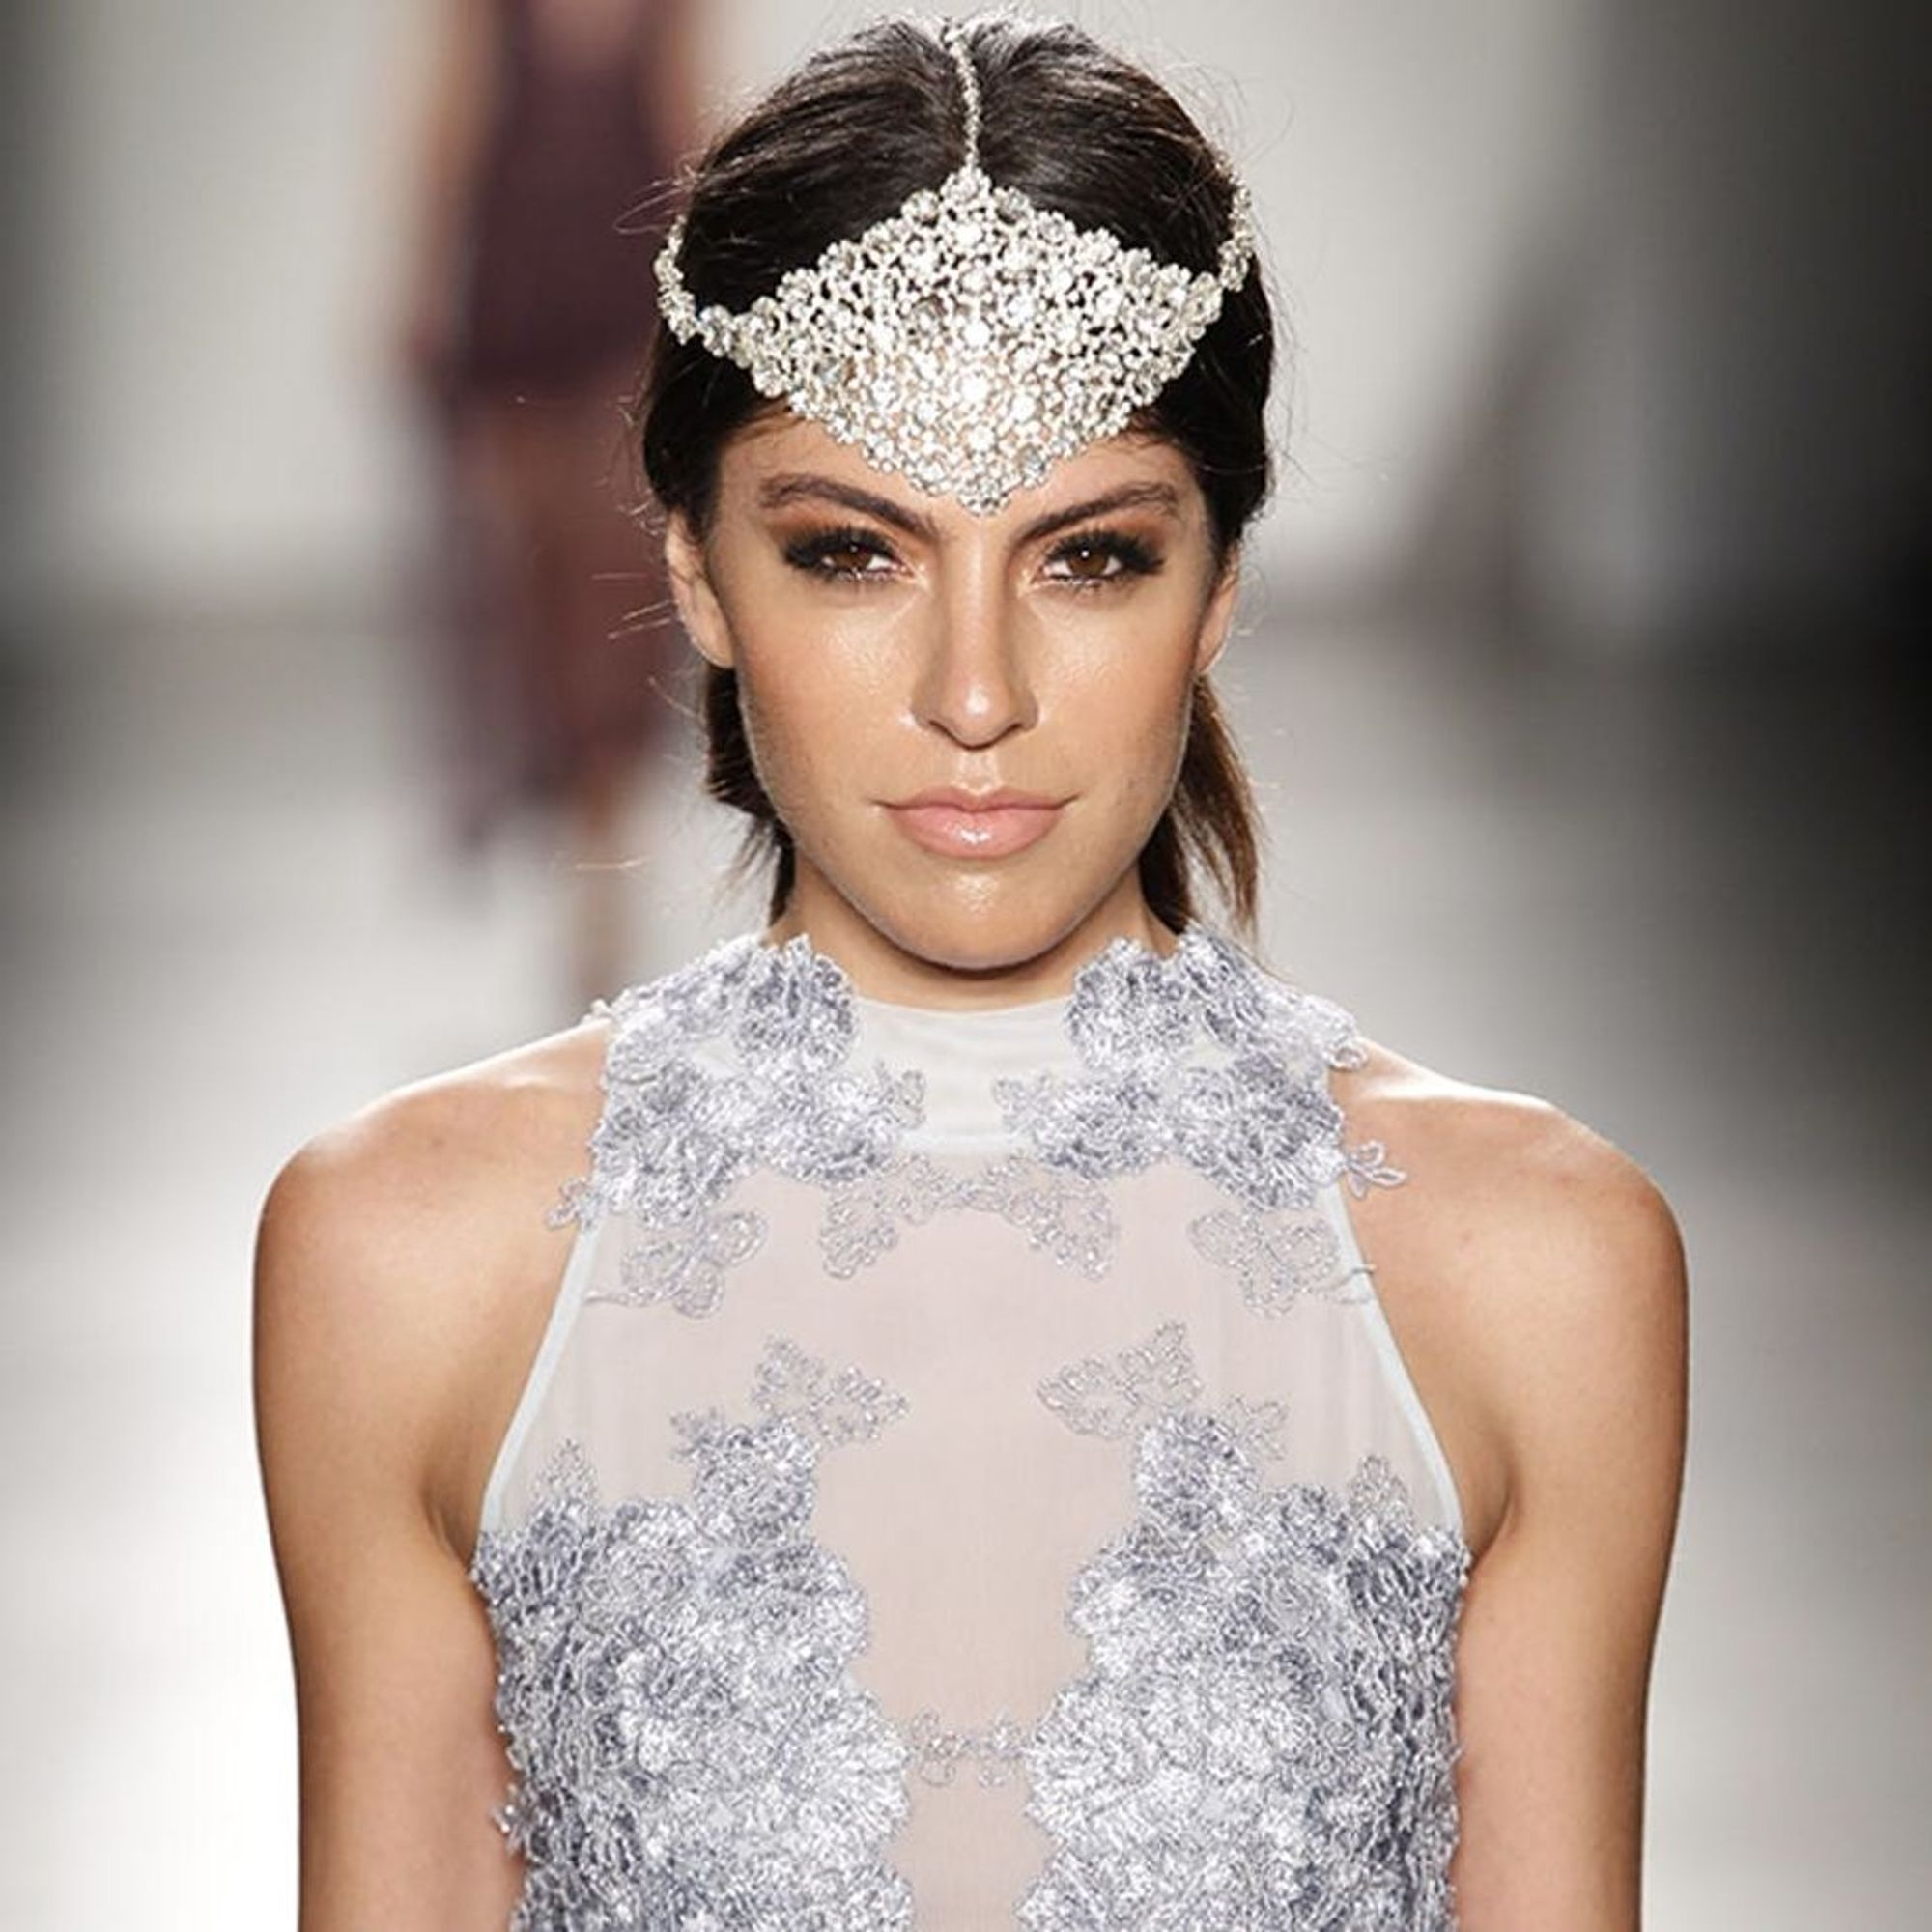 Wedding Hairstyles For Long Hair 24 Creative Unique: 24 Runway-Inspired Hair, Makeup + Style Looks For Every